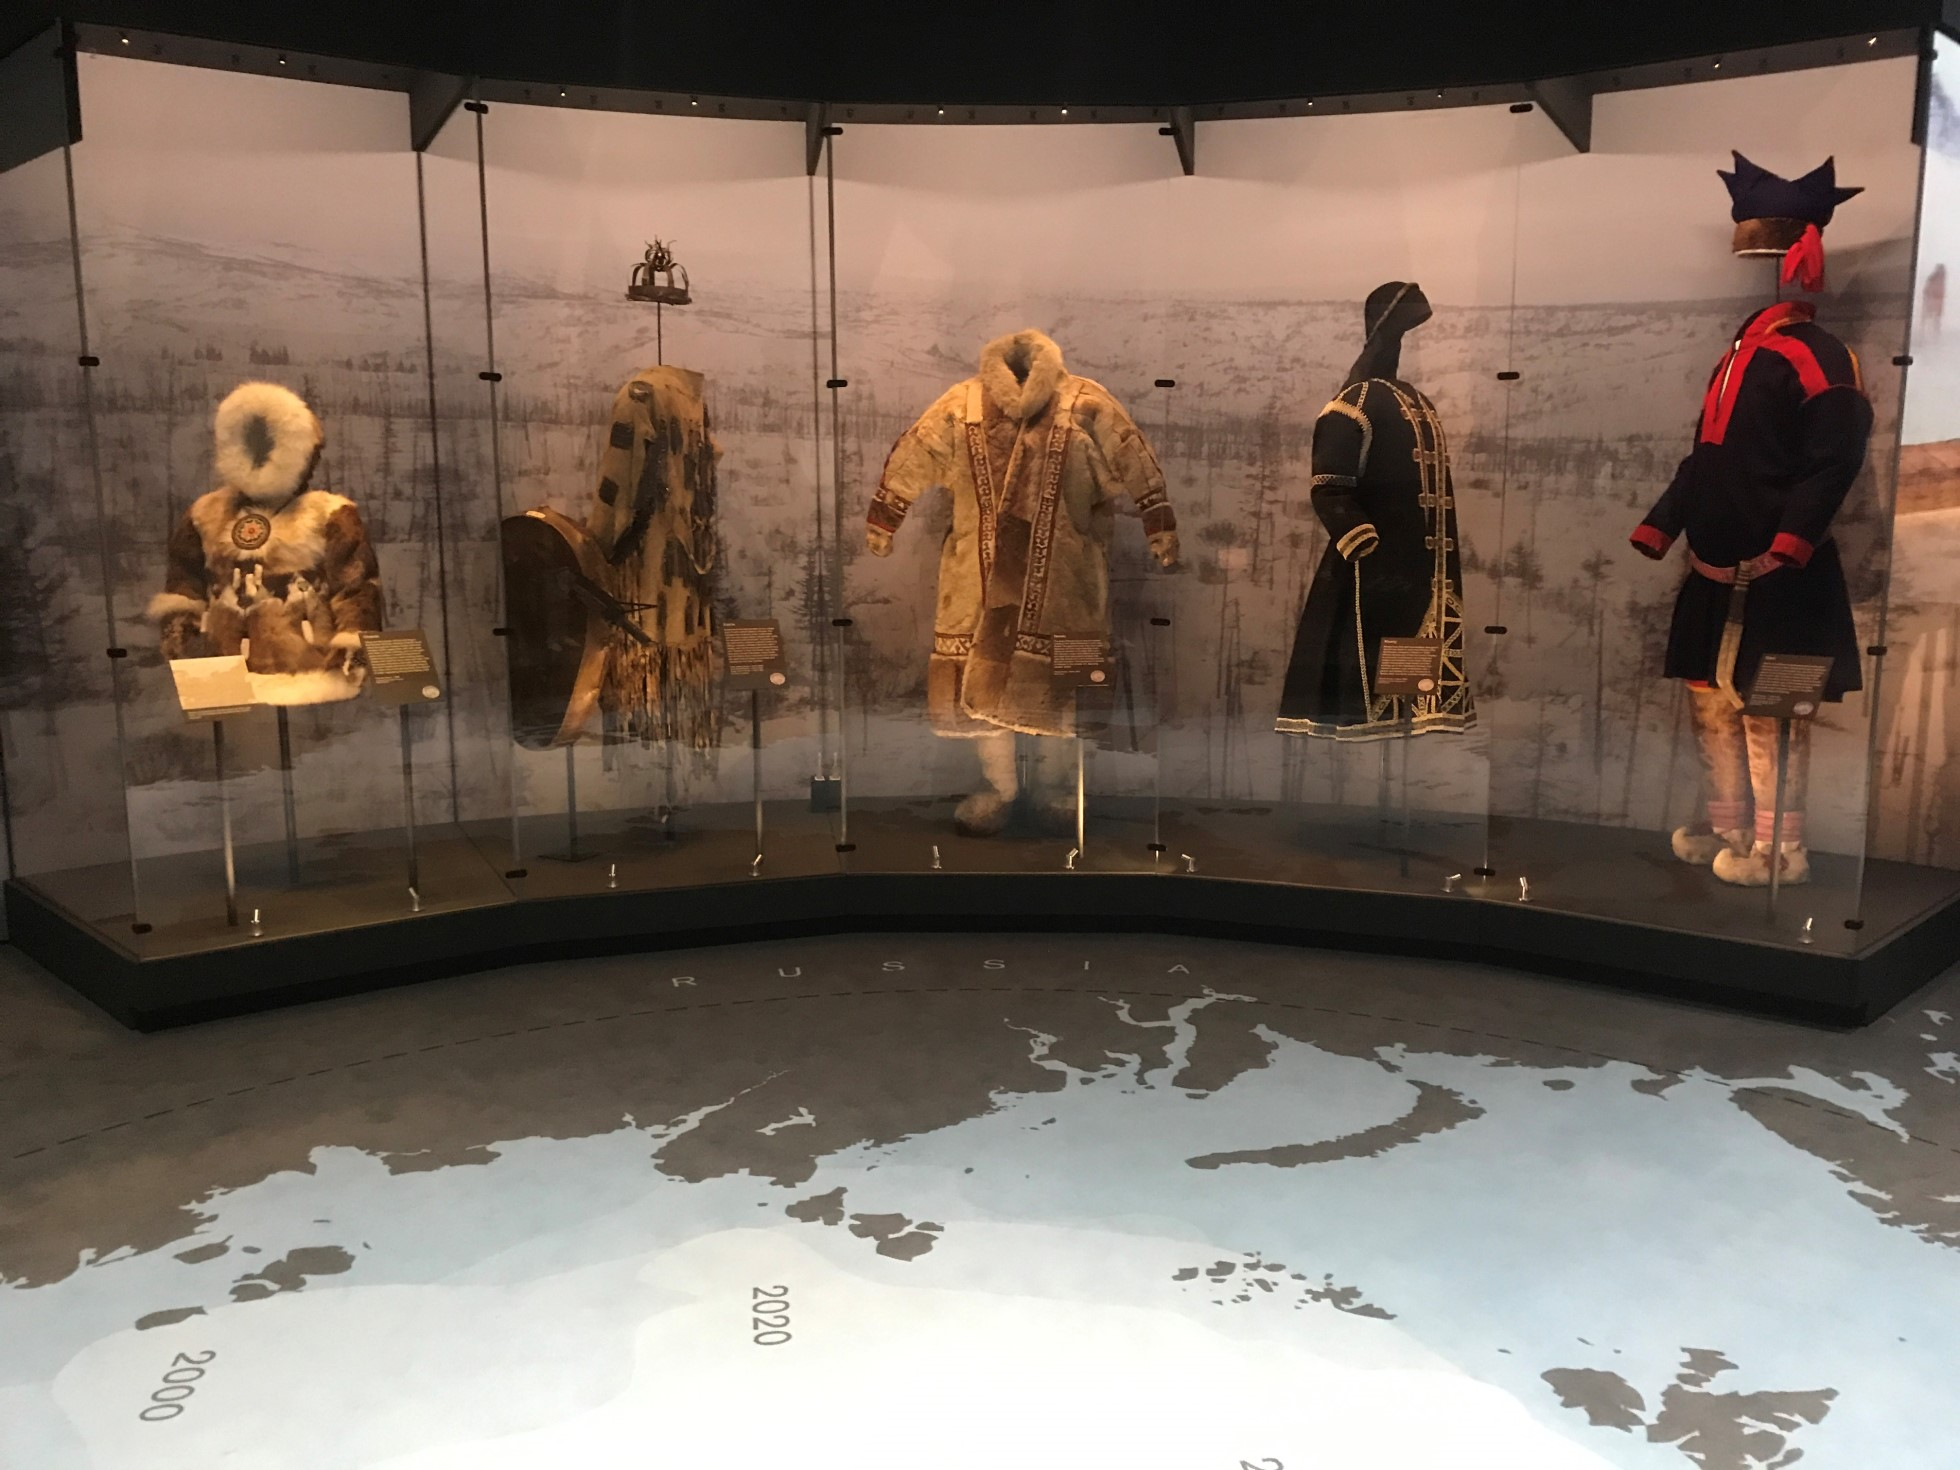 A photograph of five different Arctic outfits on display in the Arctic exhibition. The display includes parkas. On the floor is a map of the Arctic.